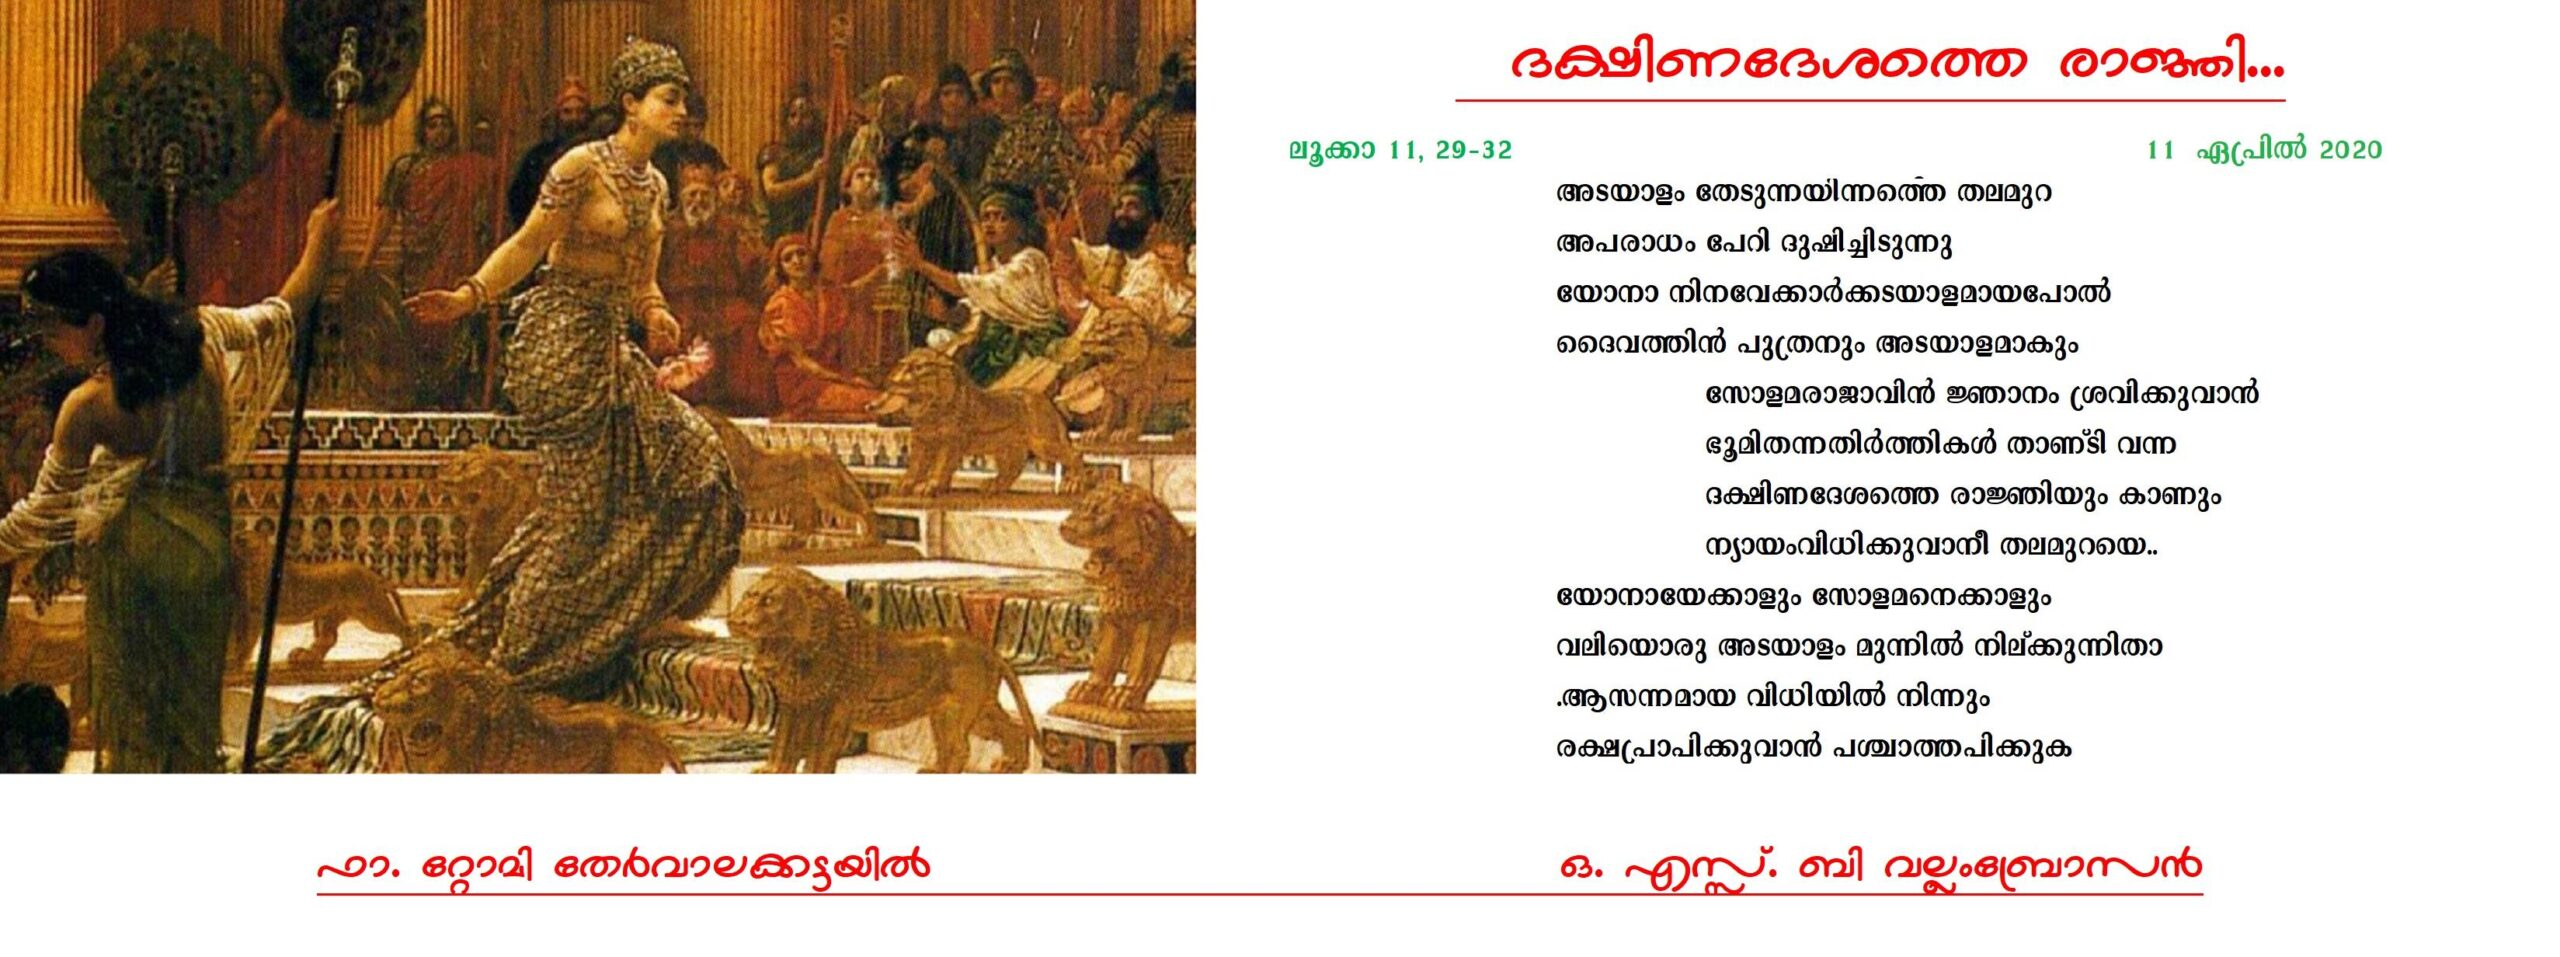 altharapookkal-626 (10)